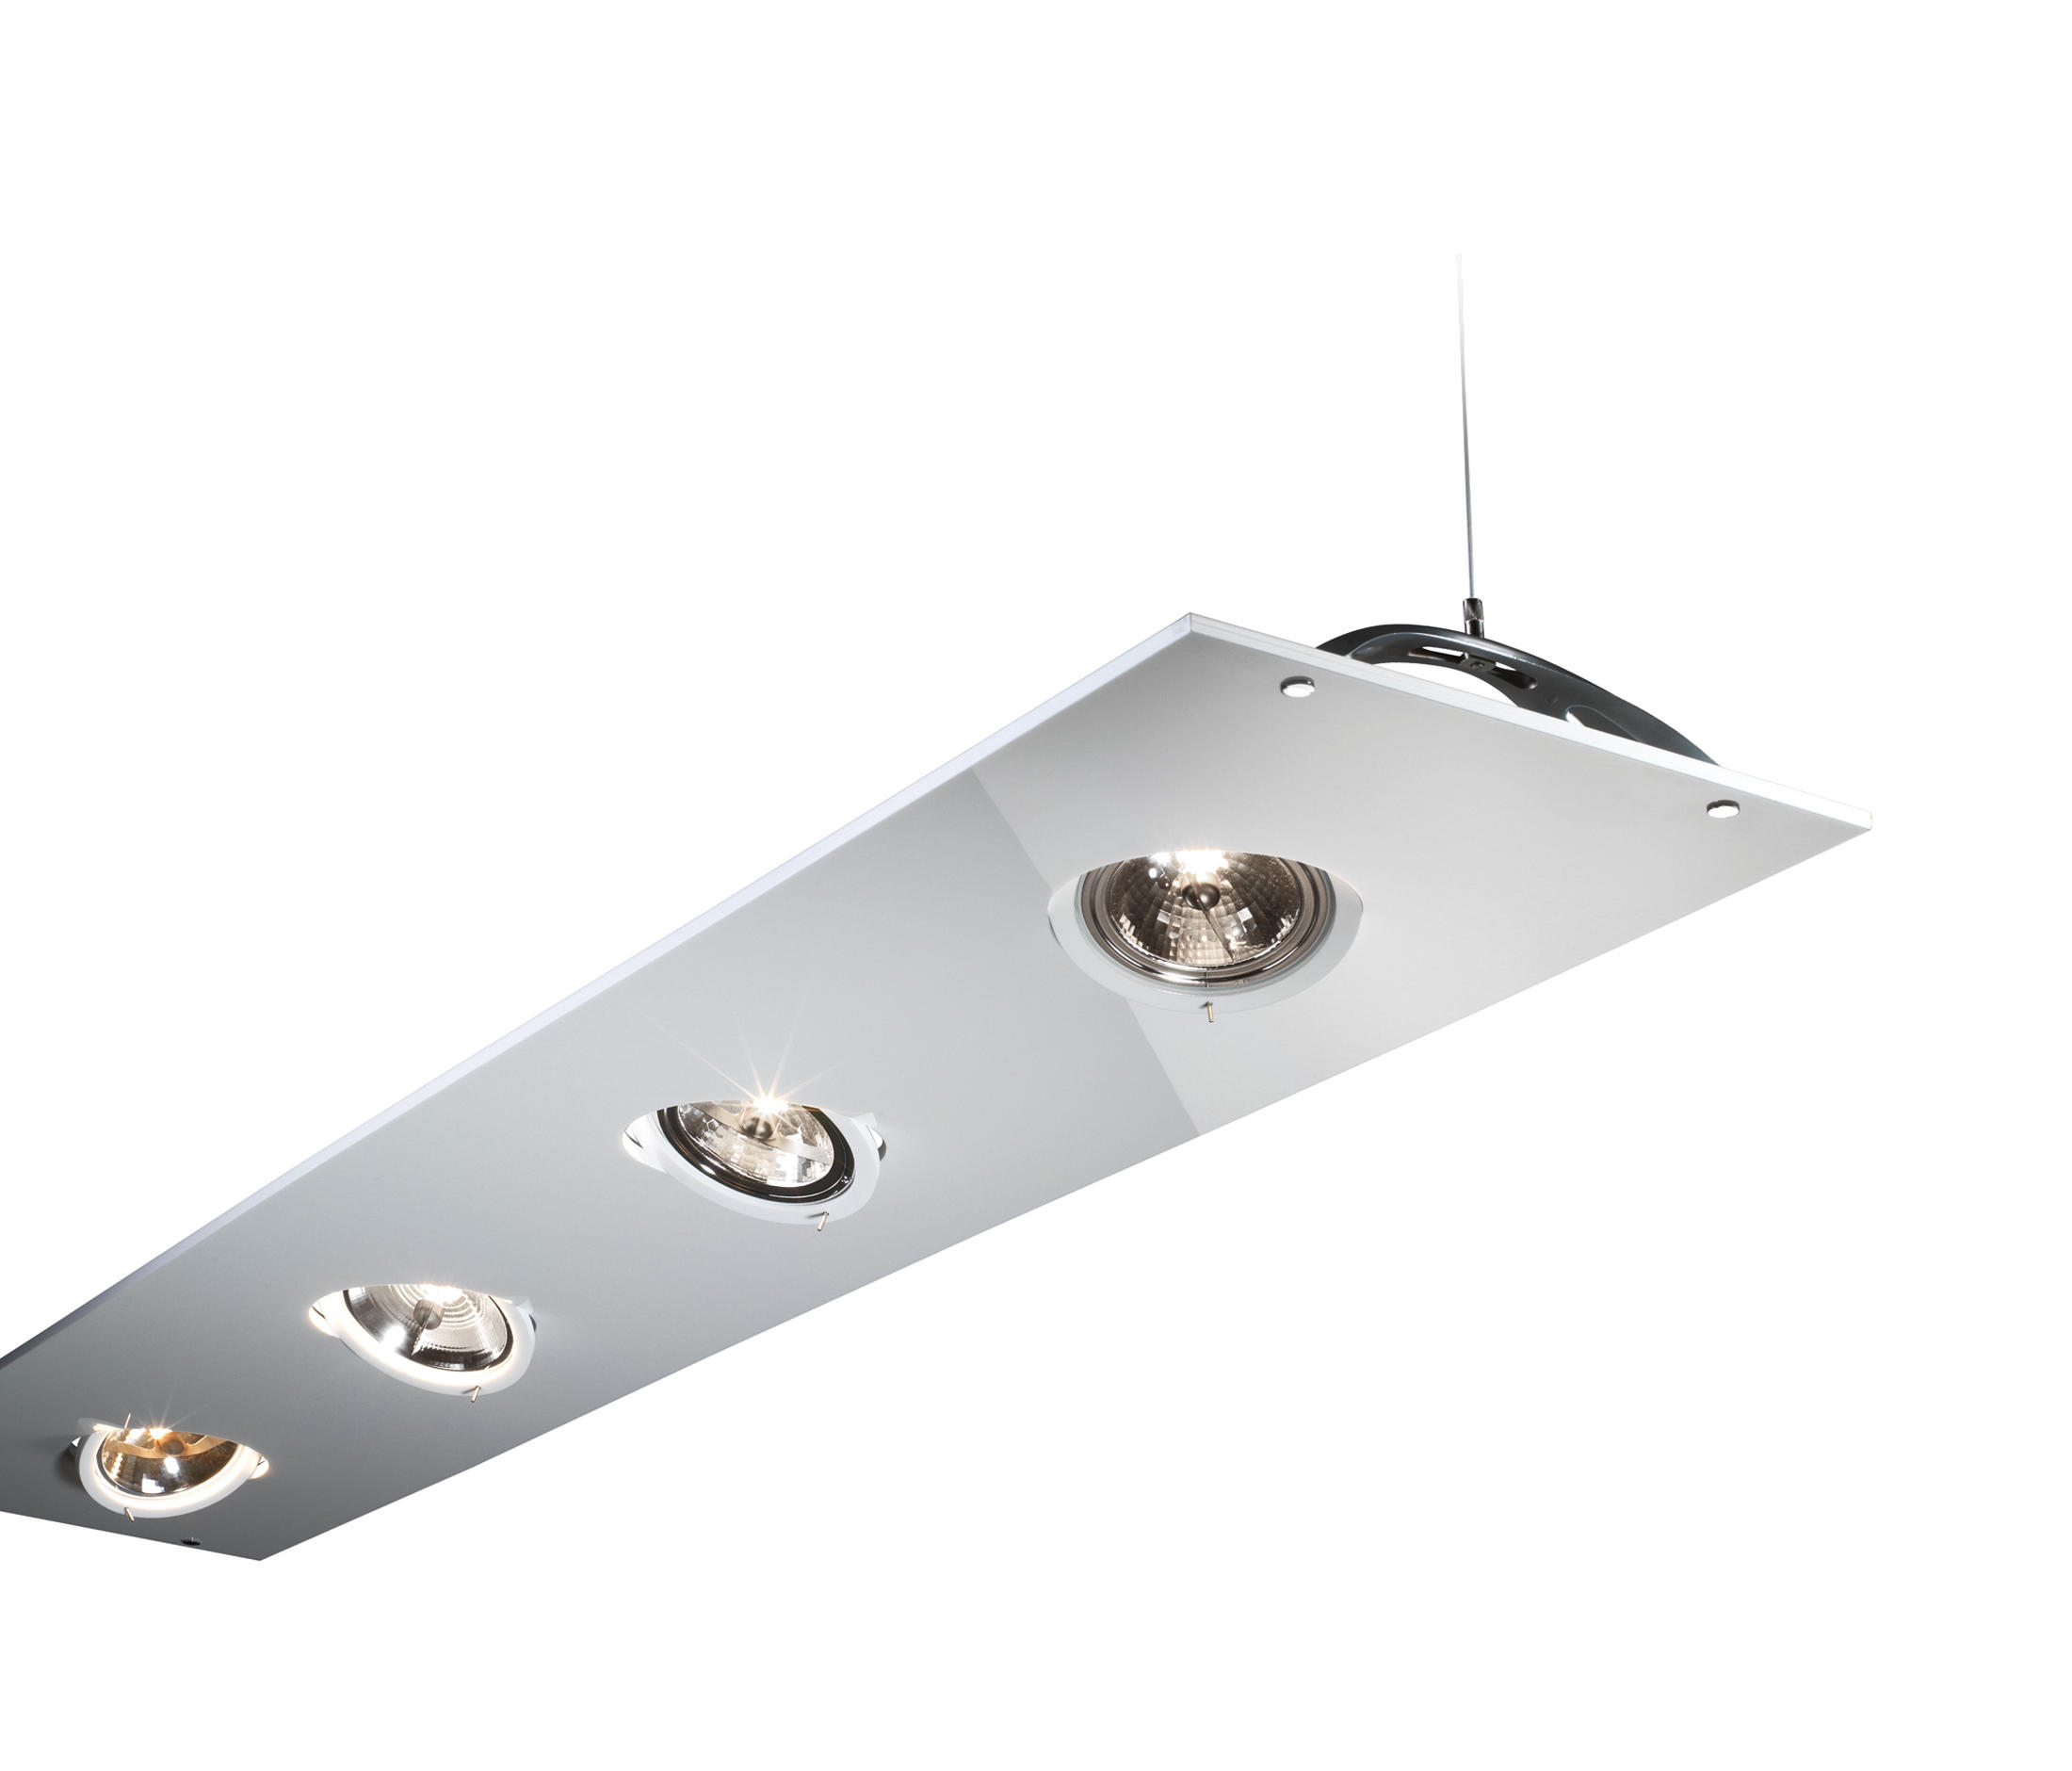 Sherazade Lighting System Suspended Lights From Targetti